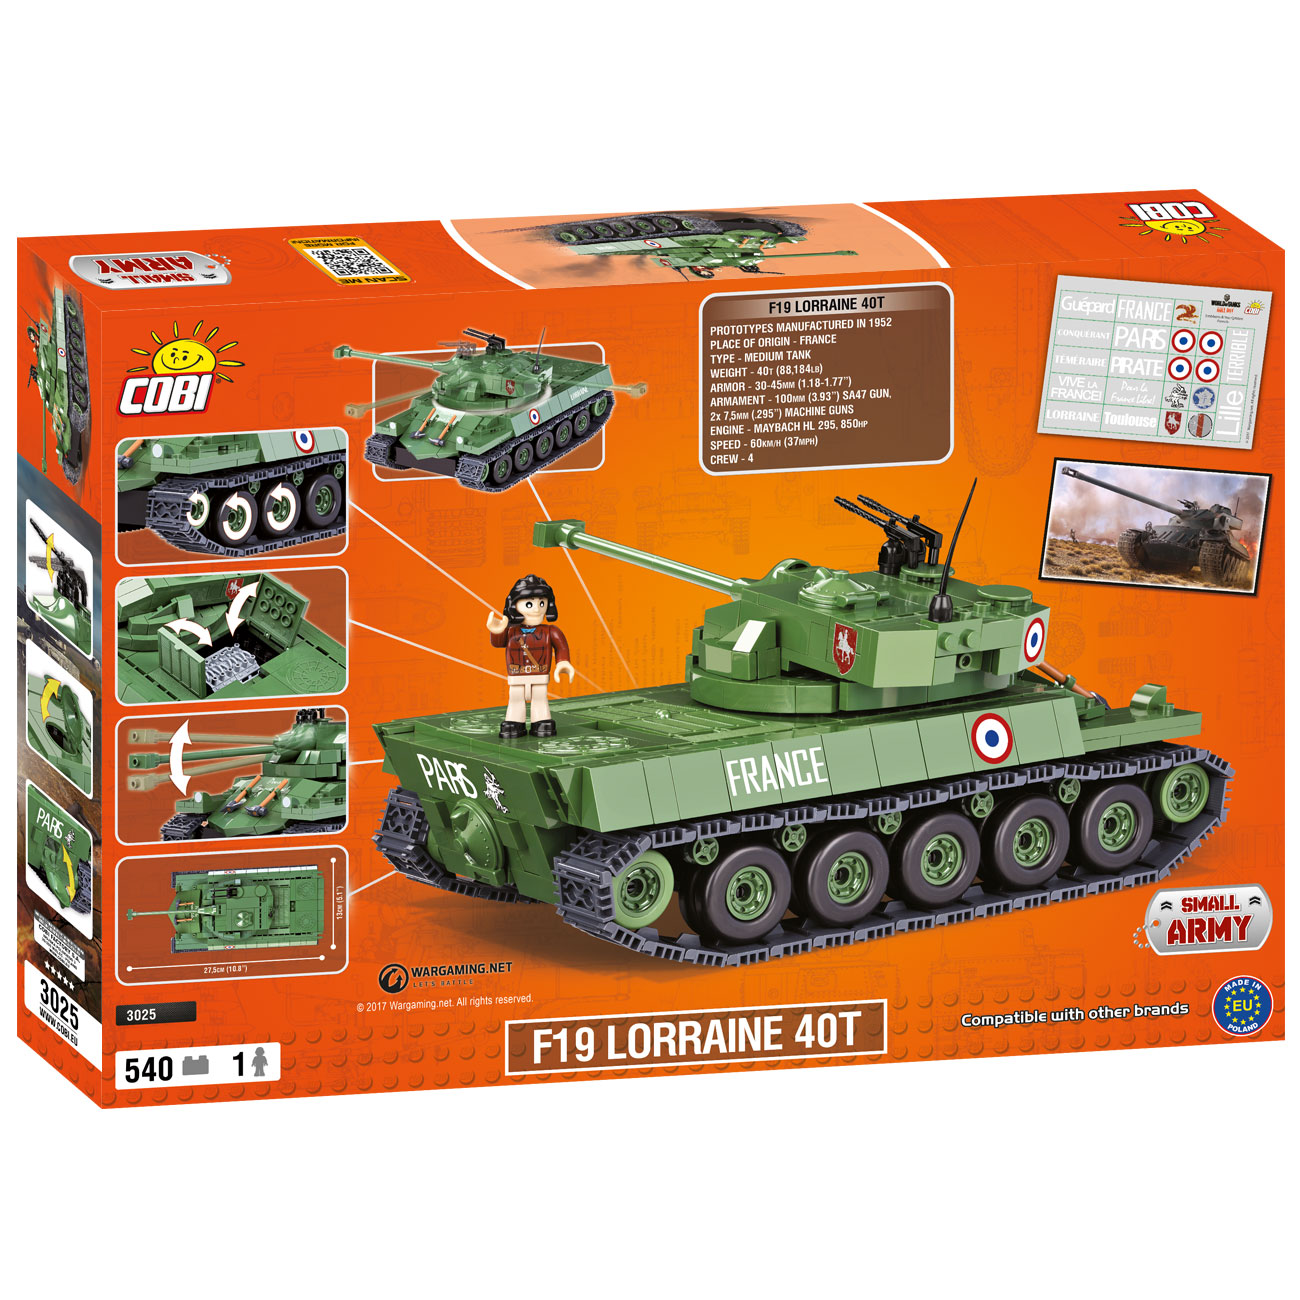 Cobi World Of Tanks Roll Out Small Army Bausatz Panzer F19 Lorraine 40T 540 Teile 3025 2